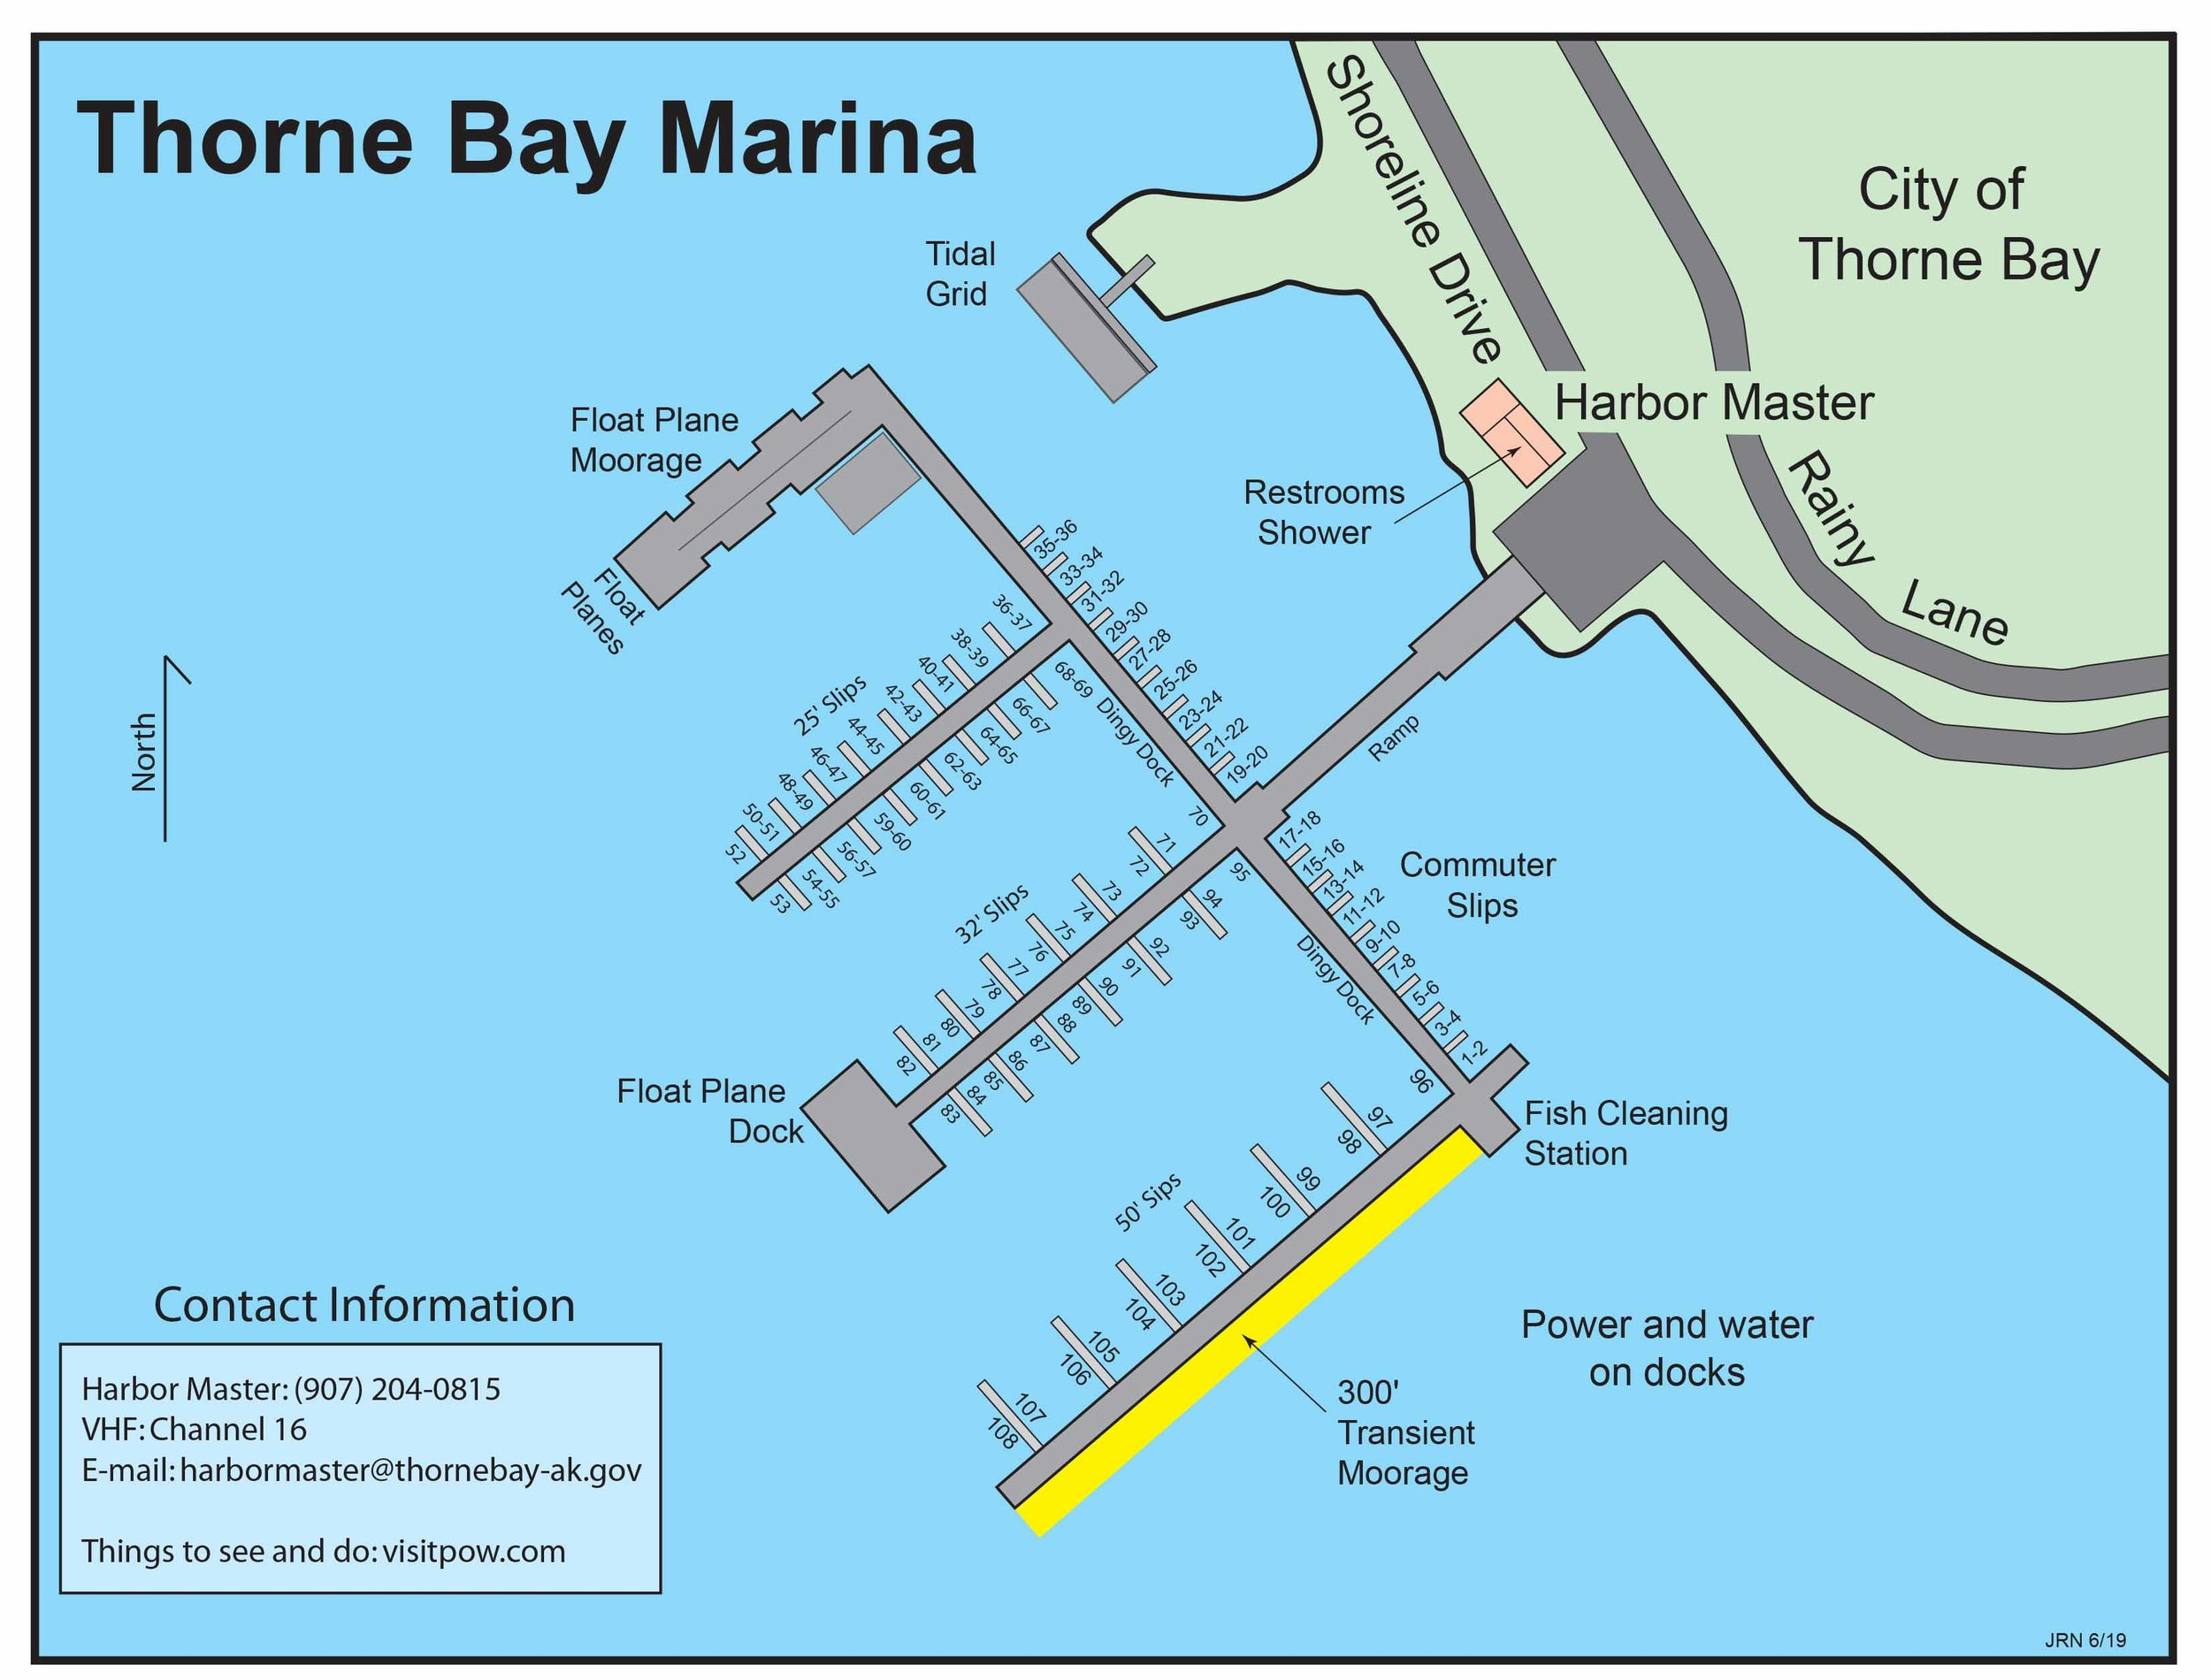 The Thorne Bay Downtown Harbor Map